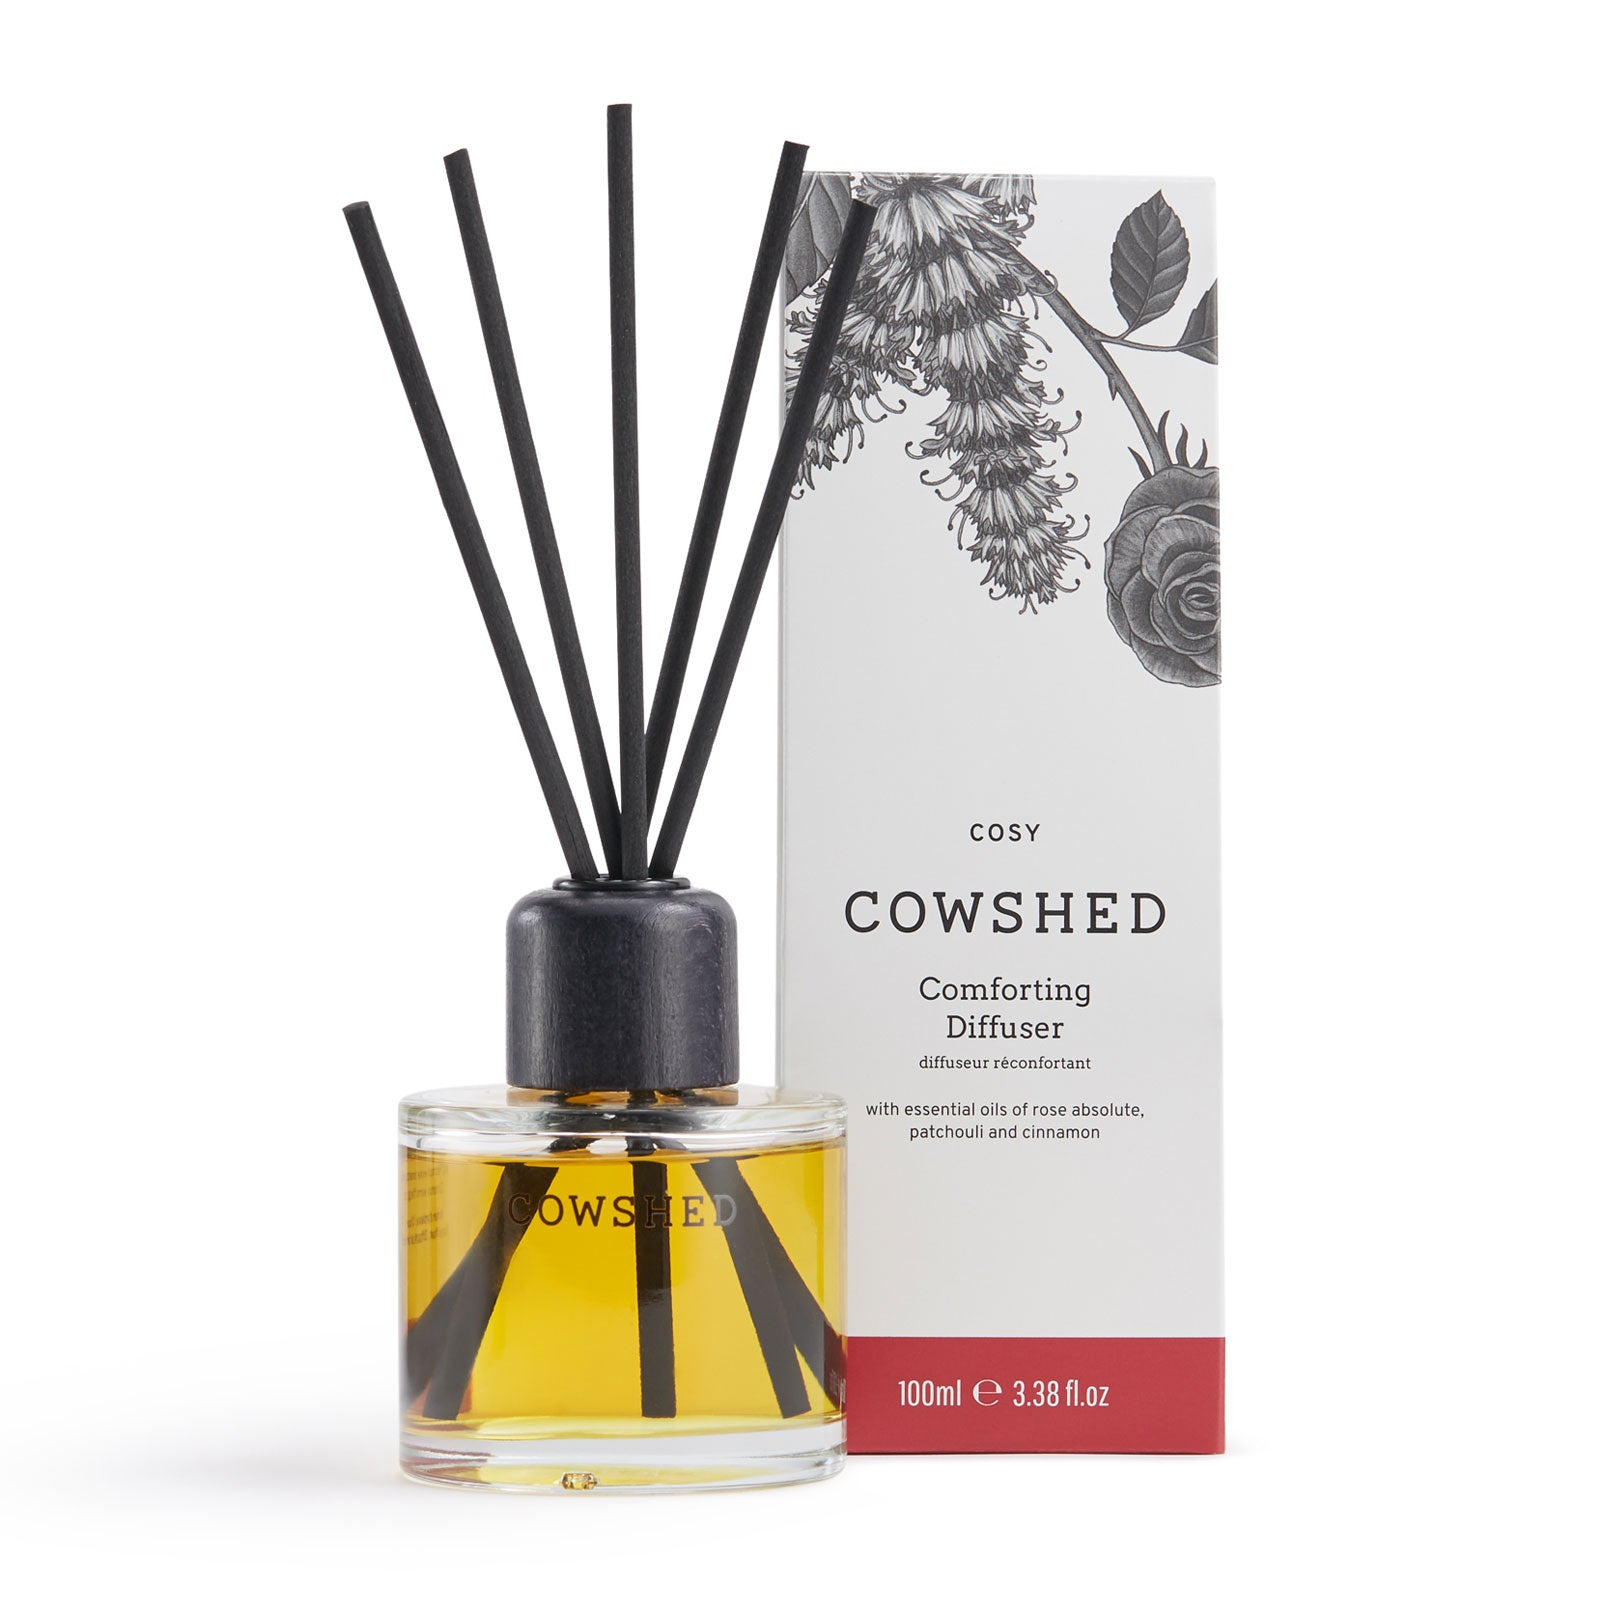 Cowshed Cosy Comforting Diffuser 100ml